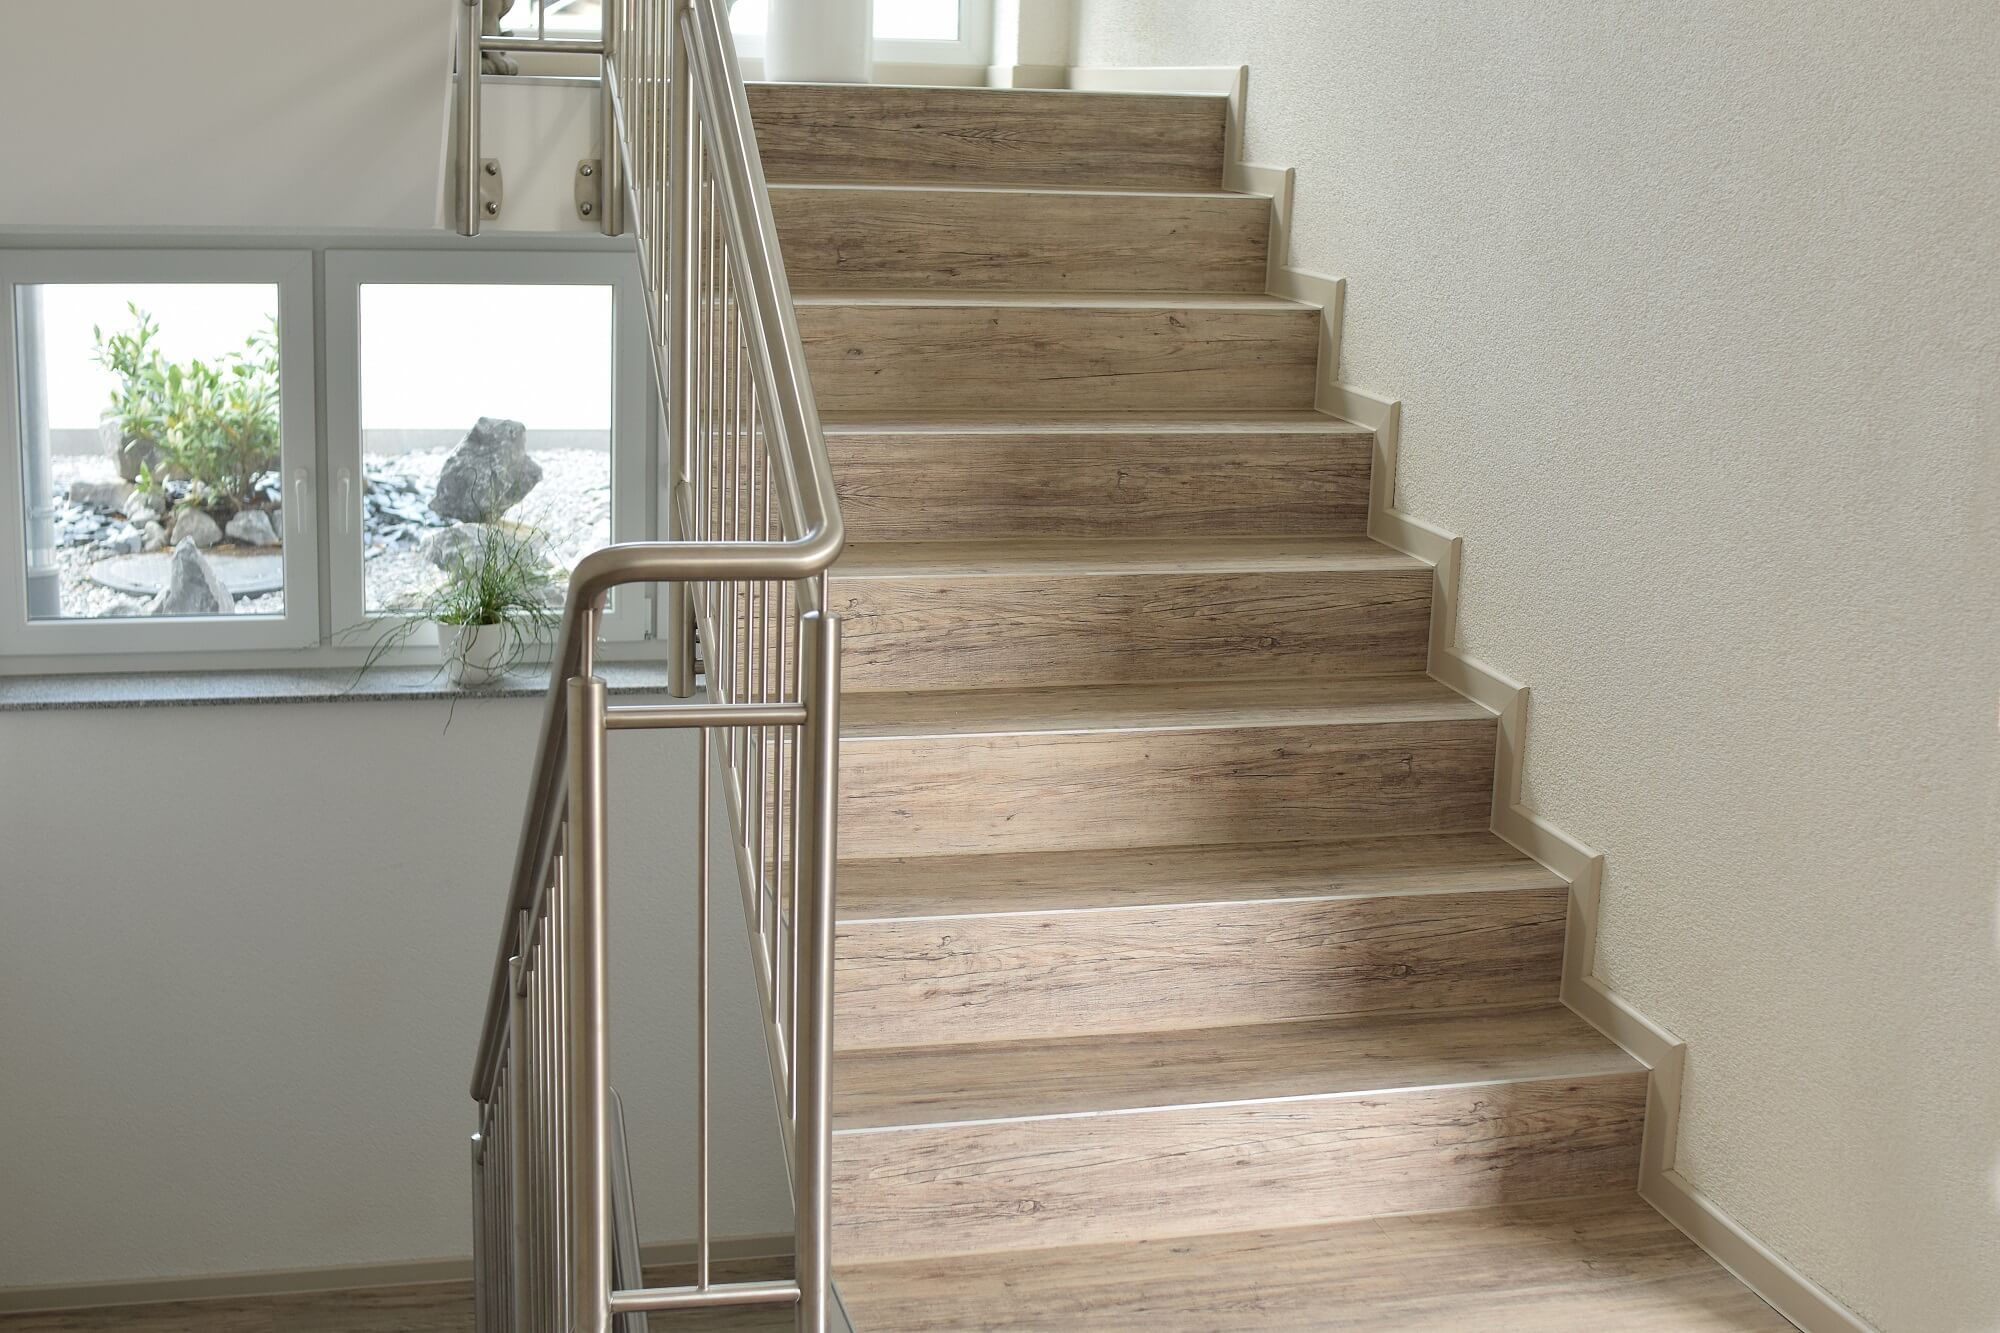 How To Install Vinyl Plank Flooring On Stairs Builddirect Learning Centerlearning Center